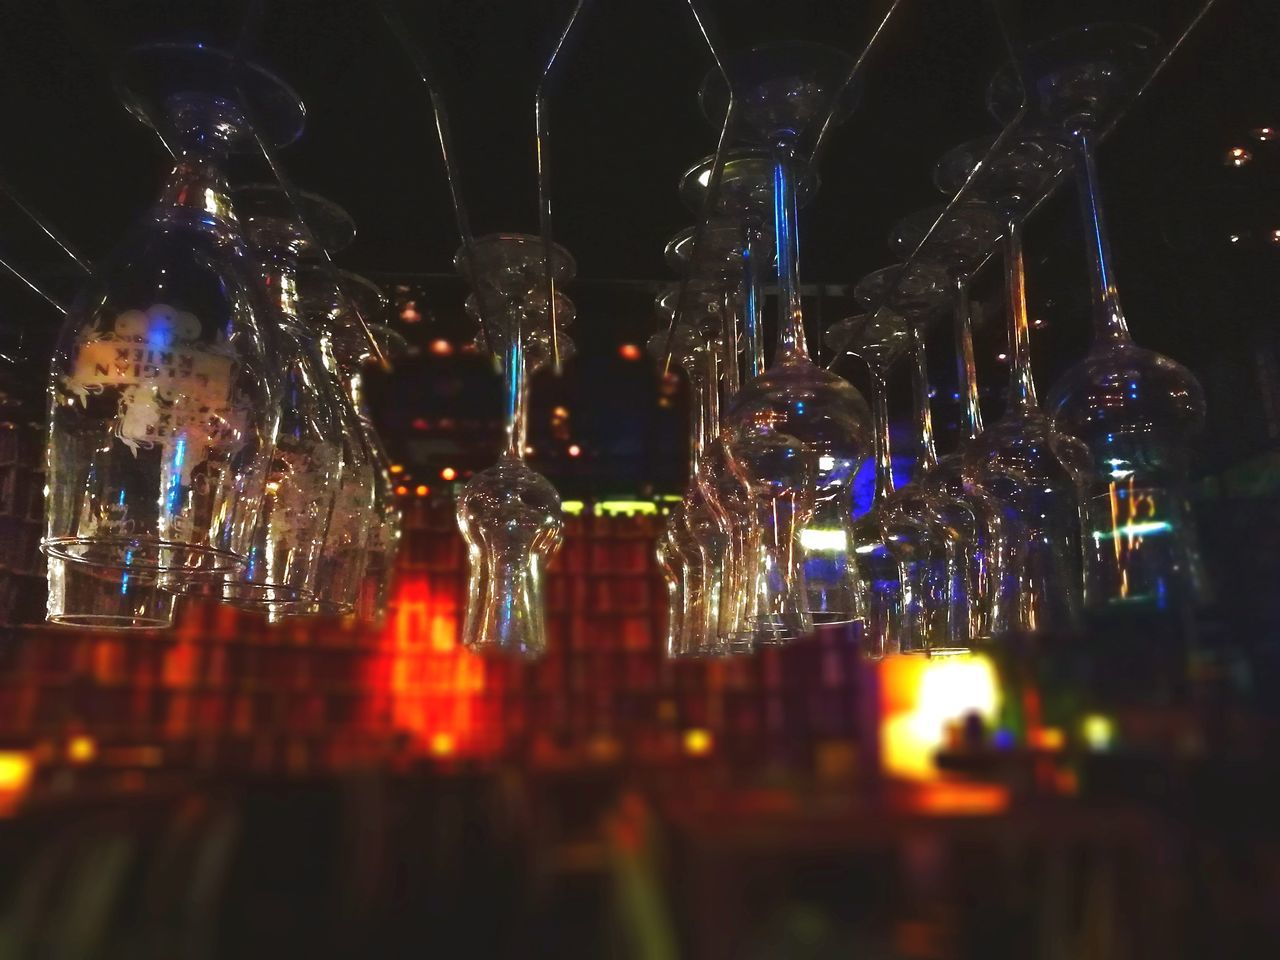 Thailand Night Nightphotography Night Photography Night Lights Drink Drinks Drinking Drinking Glass Drinking Wine Wine Beer Alcohol Chill Chilling Chillout Hangout Nightlife Wineconnection Bar Restaurant Hanging